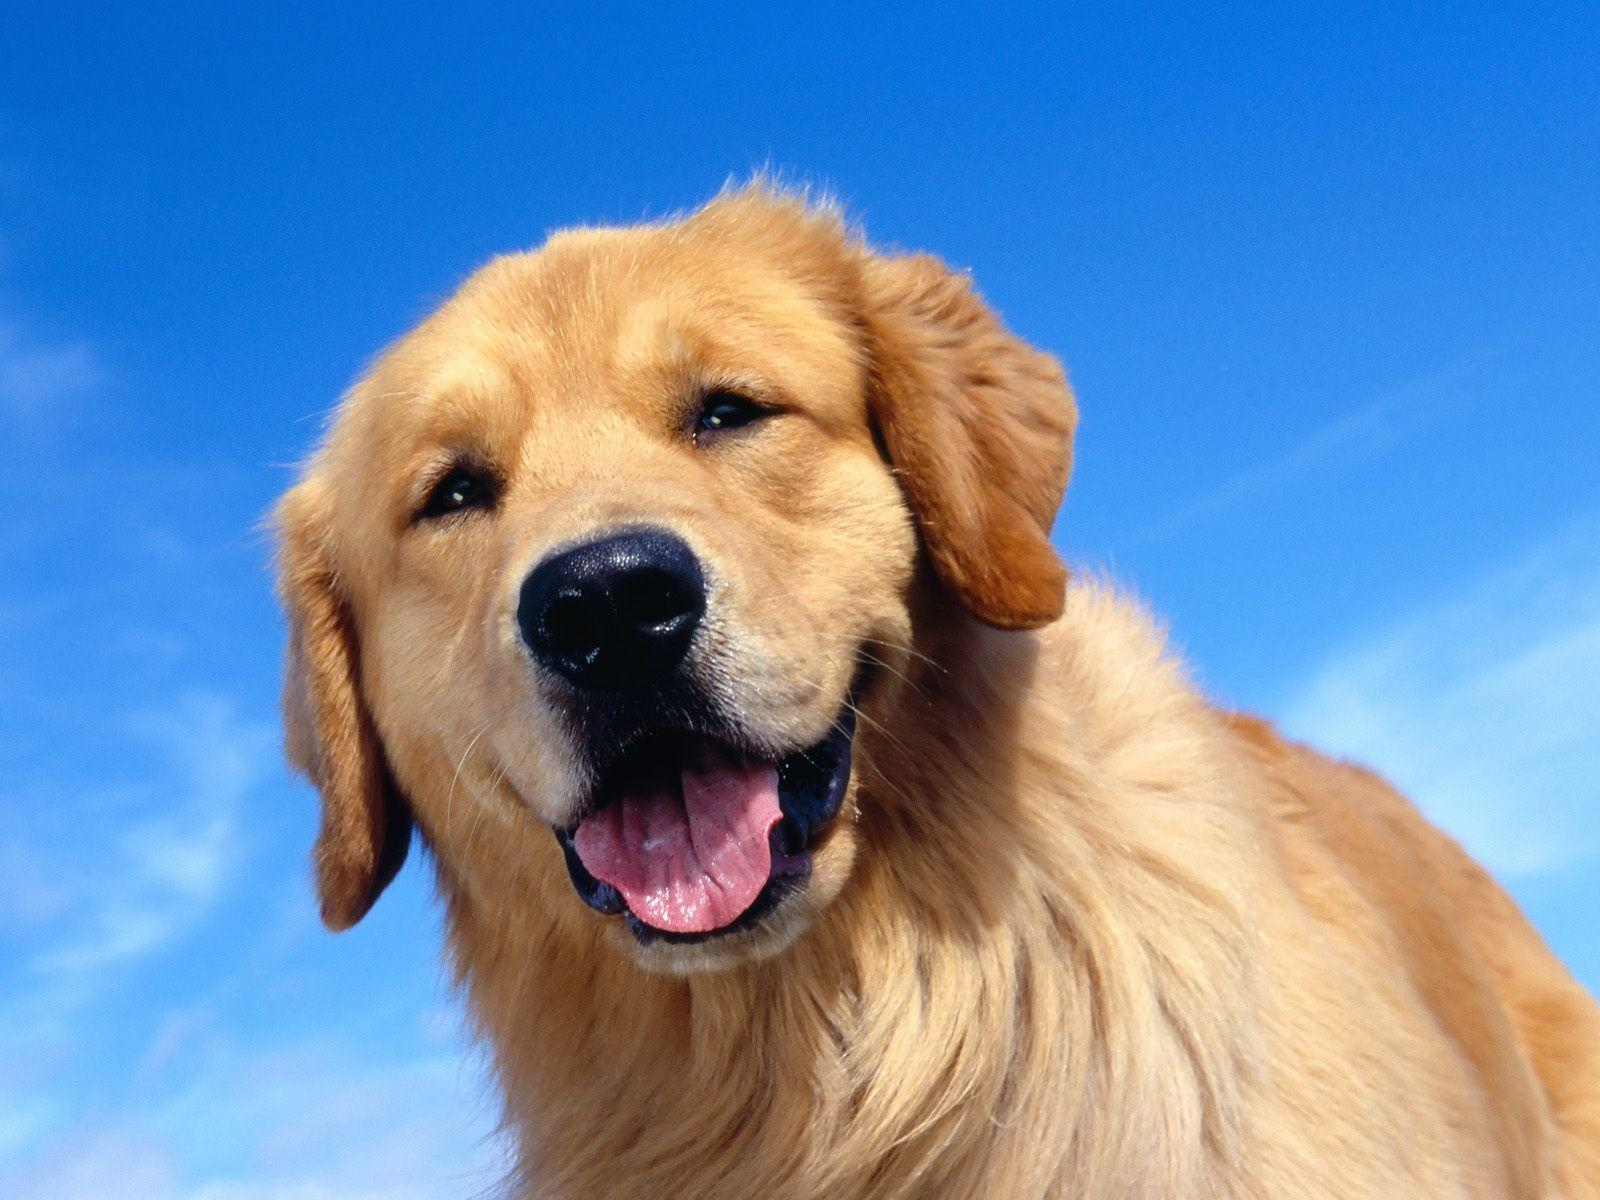 Golden Retriever Wallpapers - HD Wallpapers Inn